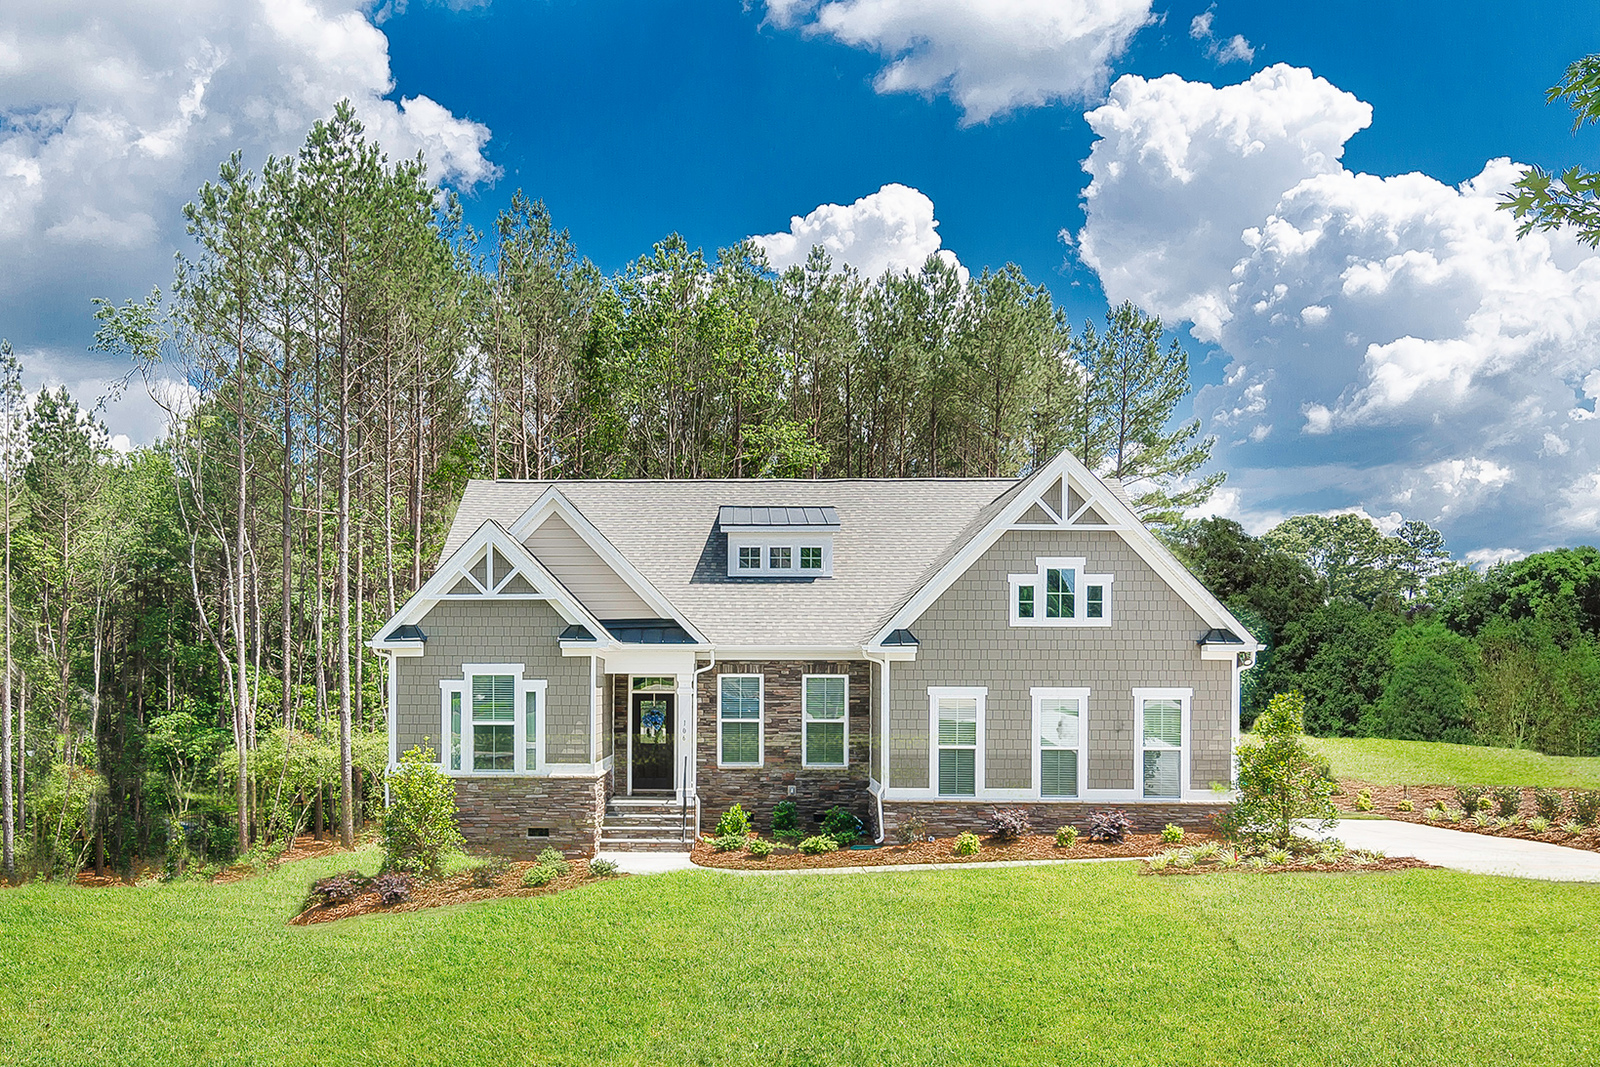 New winterbrook home model for sale at carronbridge in for House builders in south carolina